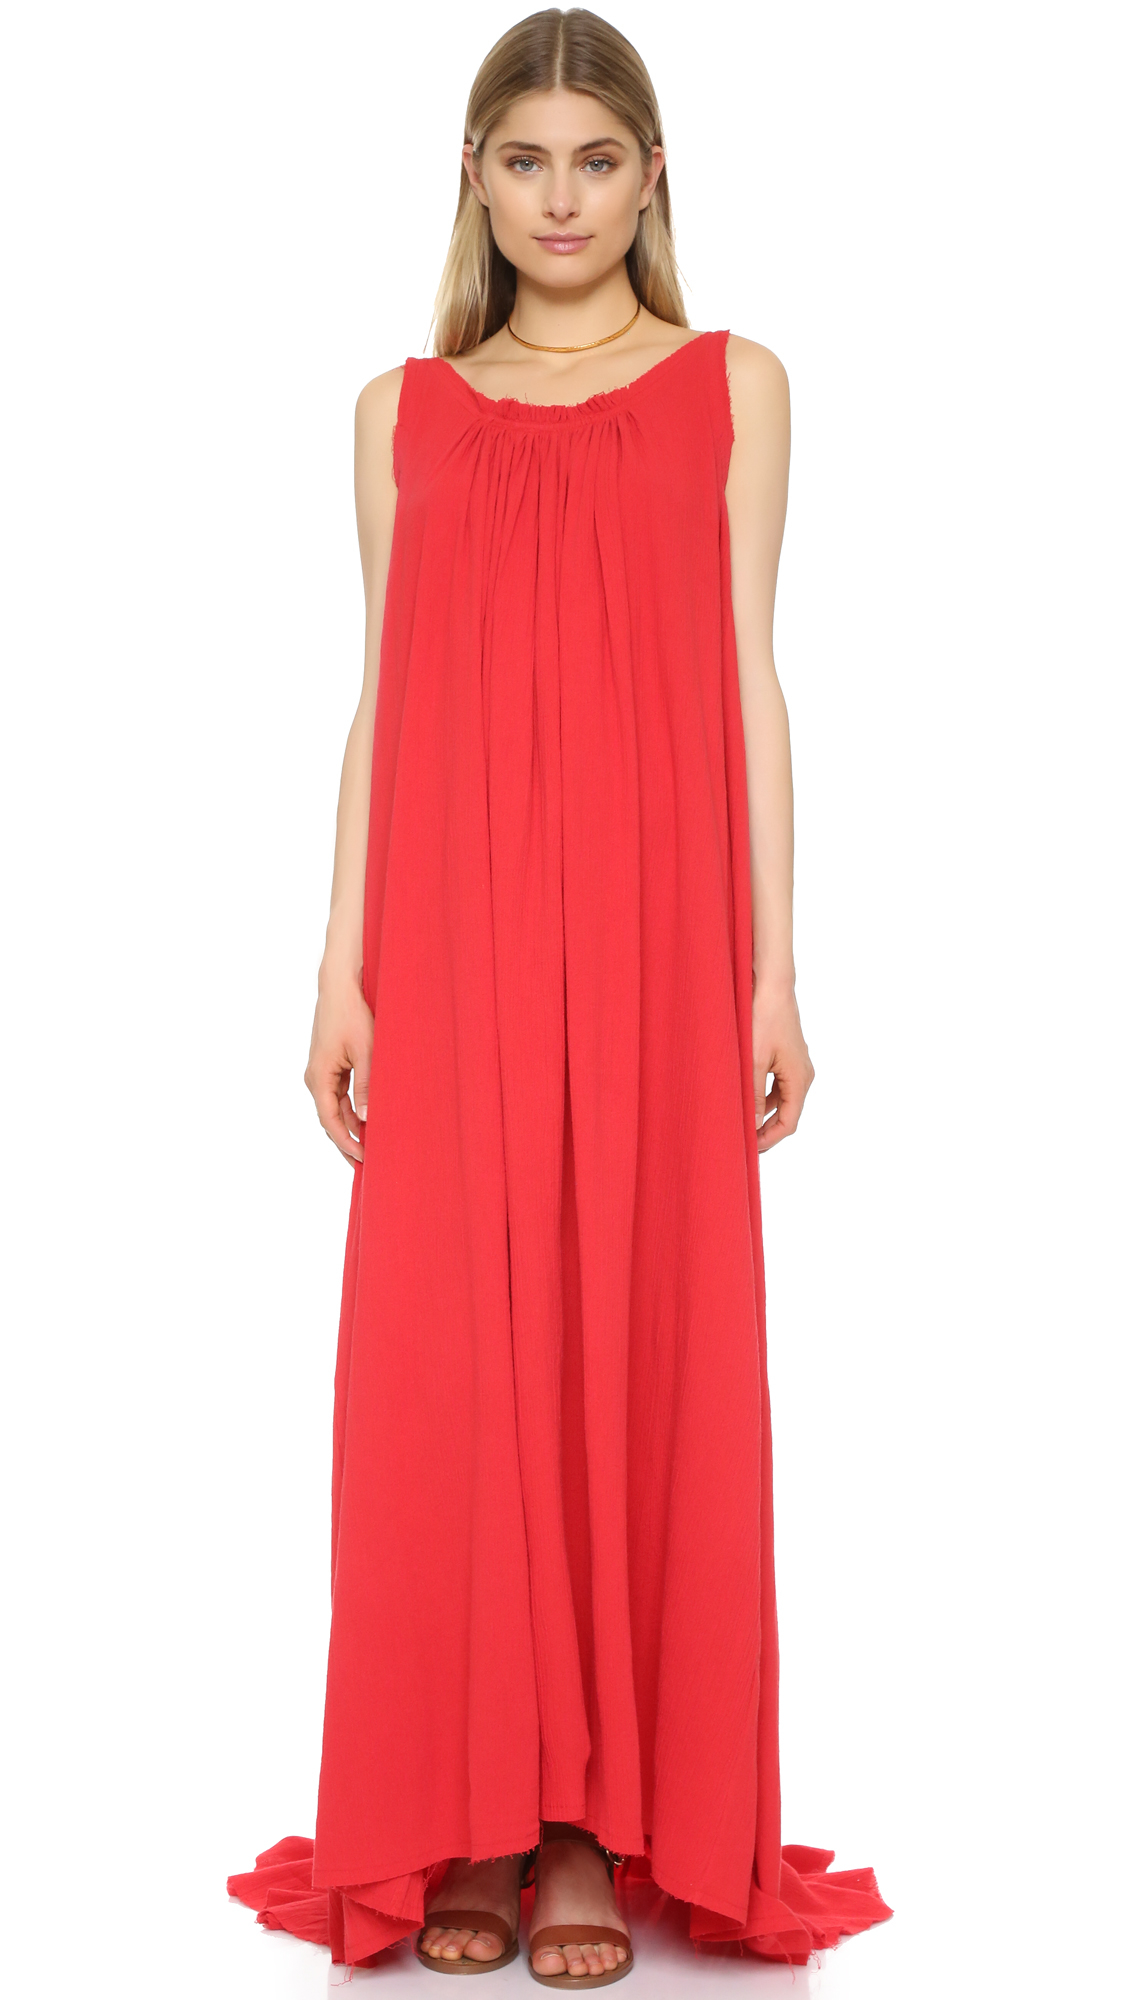 Find cotton red maxi dress at ShopStyle. Shop the latest collection of cotton red maxi dress from the most popular stores - all in one place.